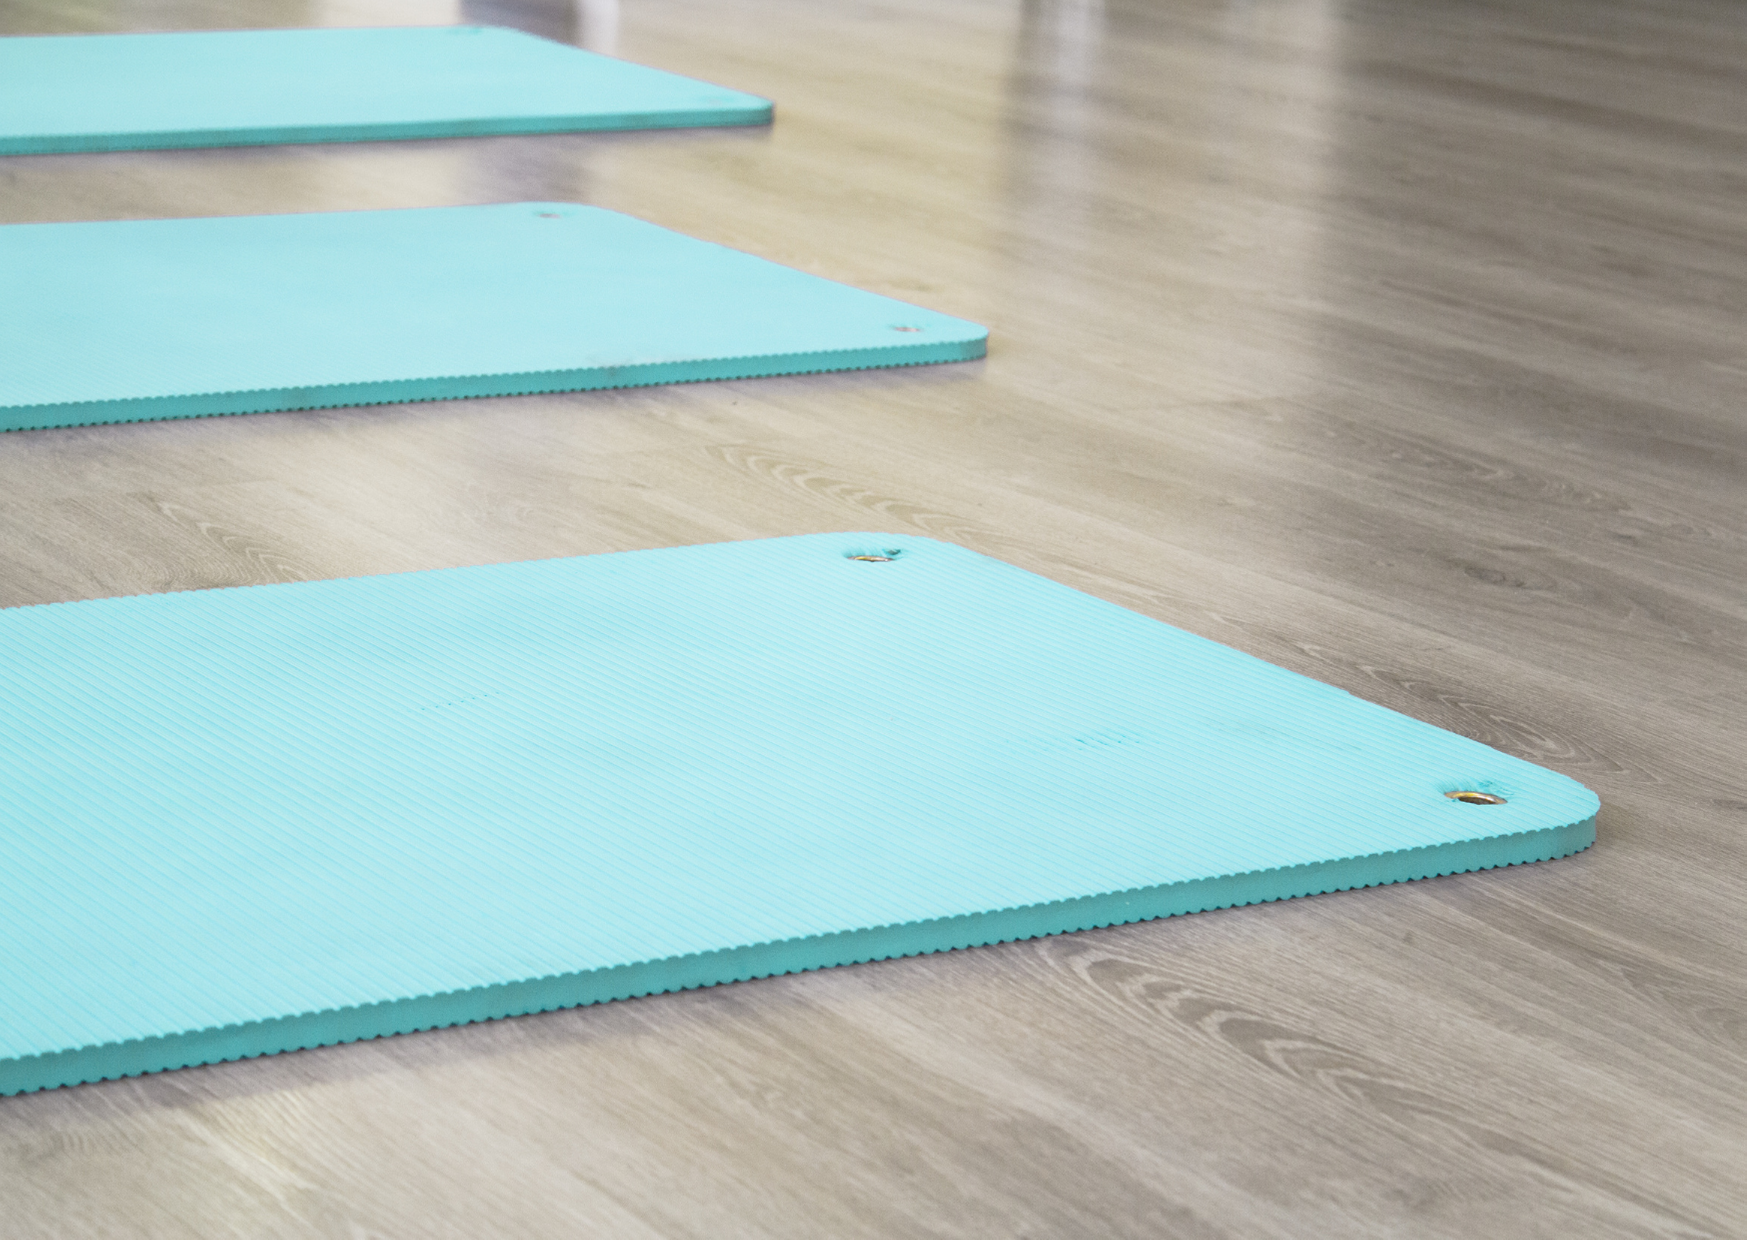 a color mint green thick yoga mat on the floor